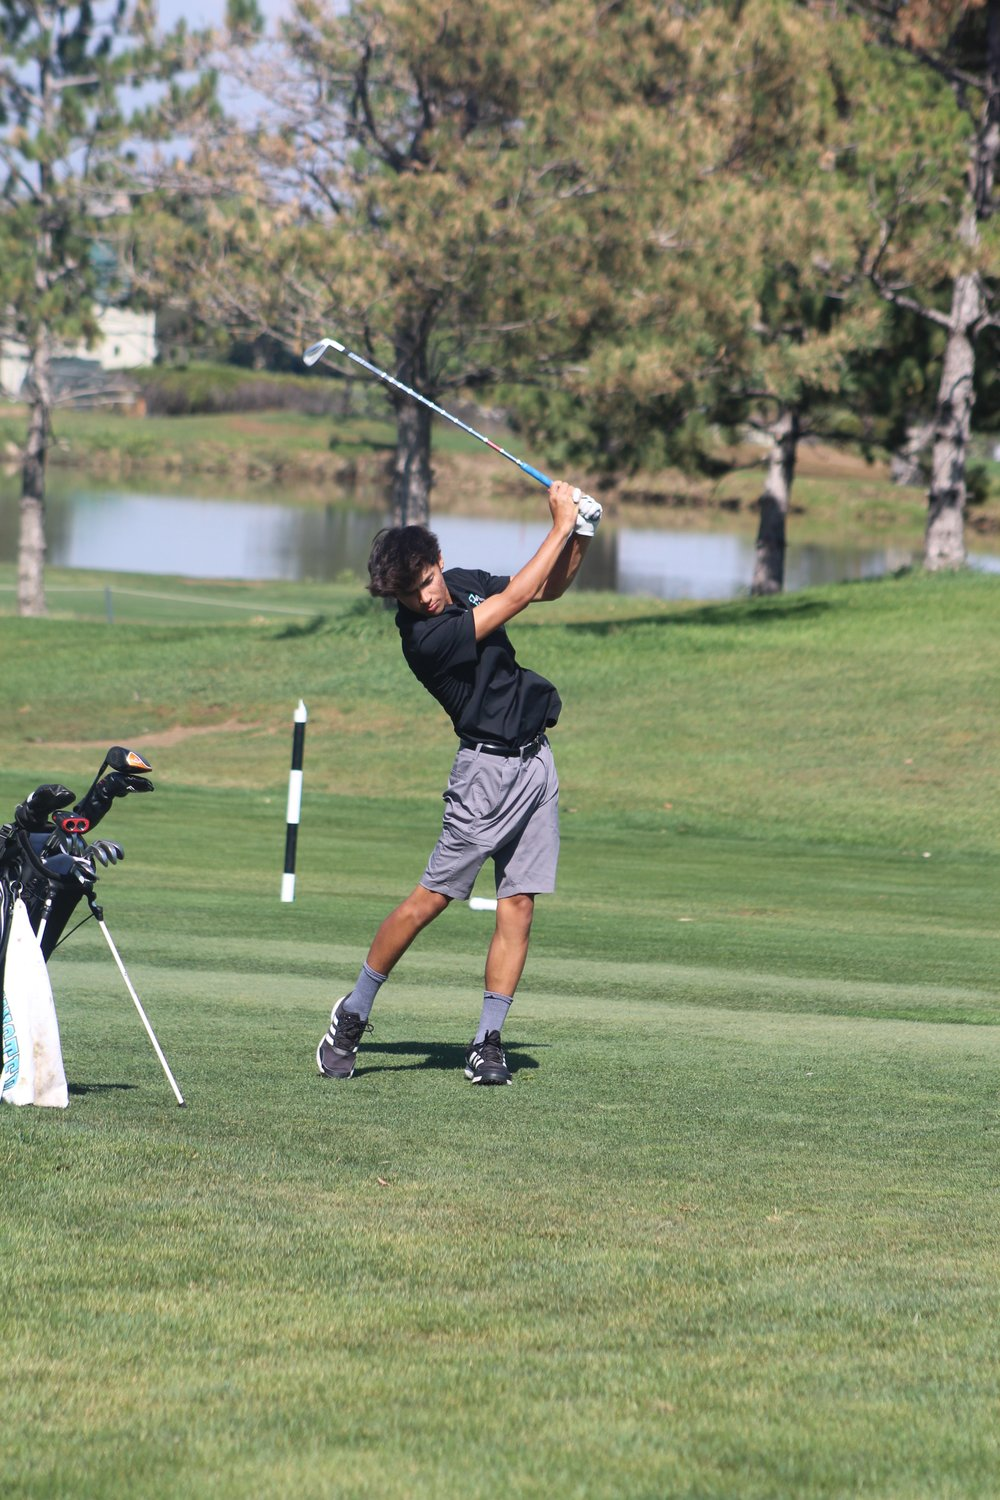 Westminster's Bielly Phasay sends this approach shot toward the first hole during the Eastern Metro Athletic Conference major )all-school) tournament in Westminster Sept. 14. Phasay finished in a tie for ninth place with a score of 90. Jerry Logan took 13th with his 92, and Trystian Martin finished his round with a 146.The Wolves finished fourth in the season standings, based on results from this tournament and a similar tournament in August.